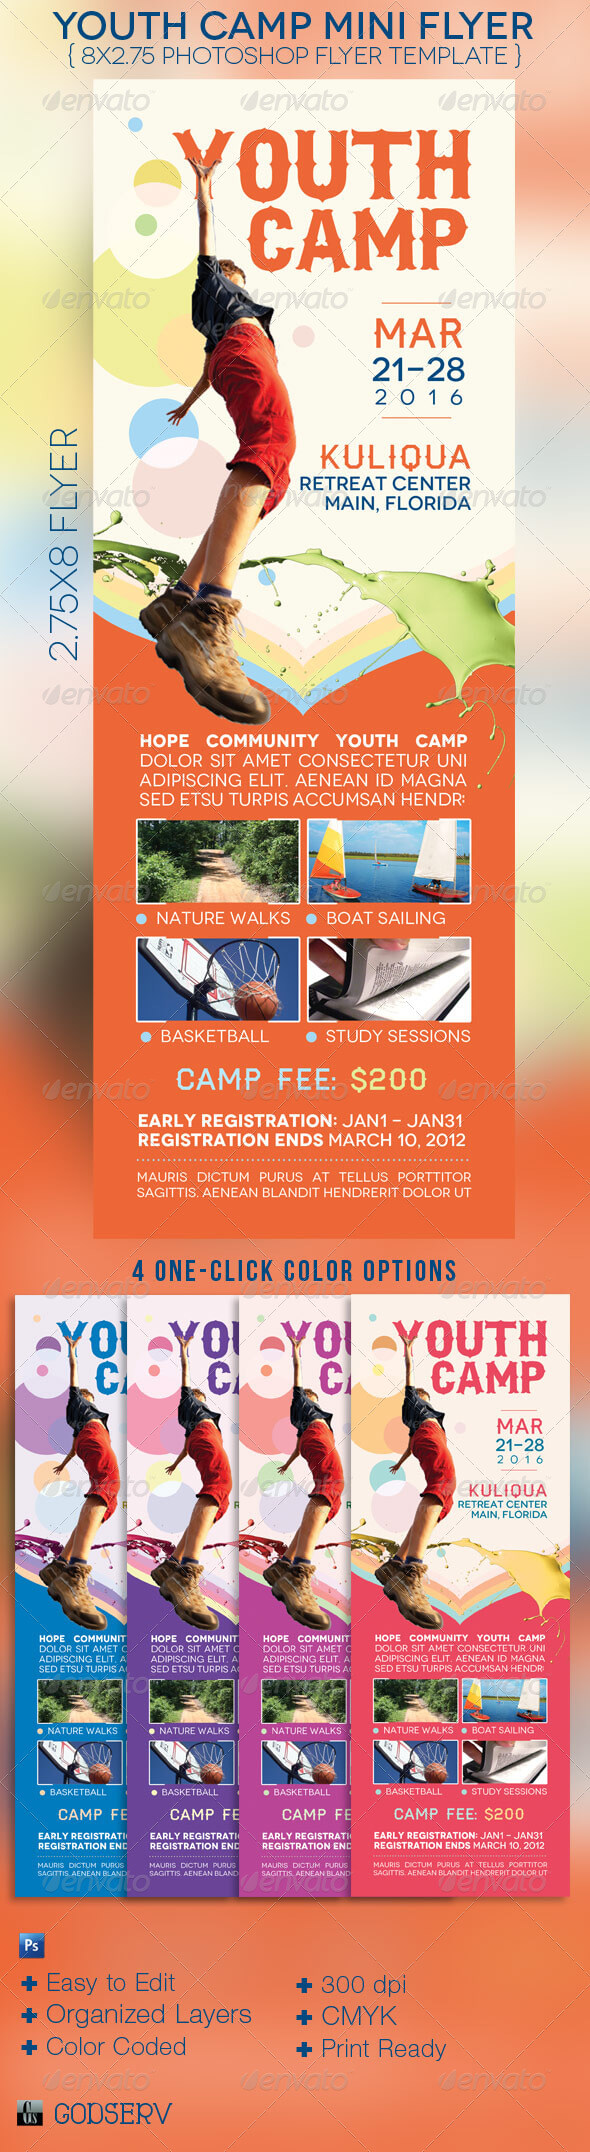 Summer Church Flyer Templates From Graphicriver throughout Ngo Brochure Templates